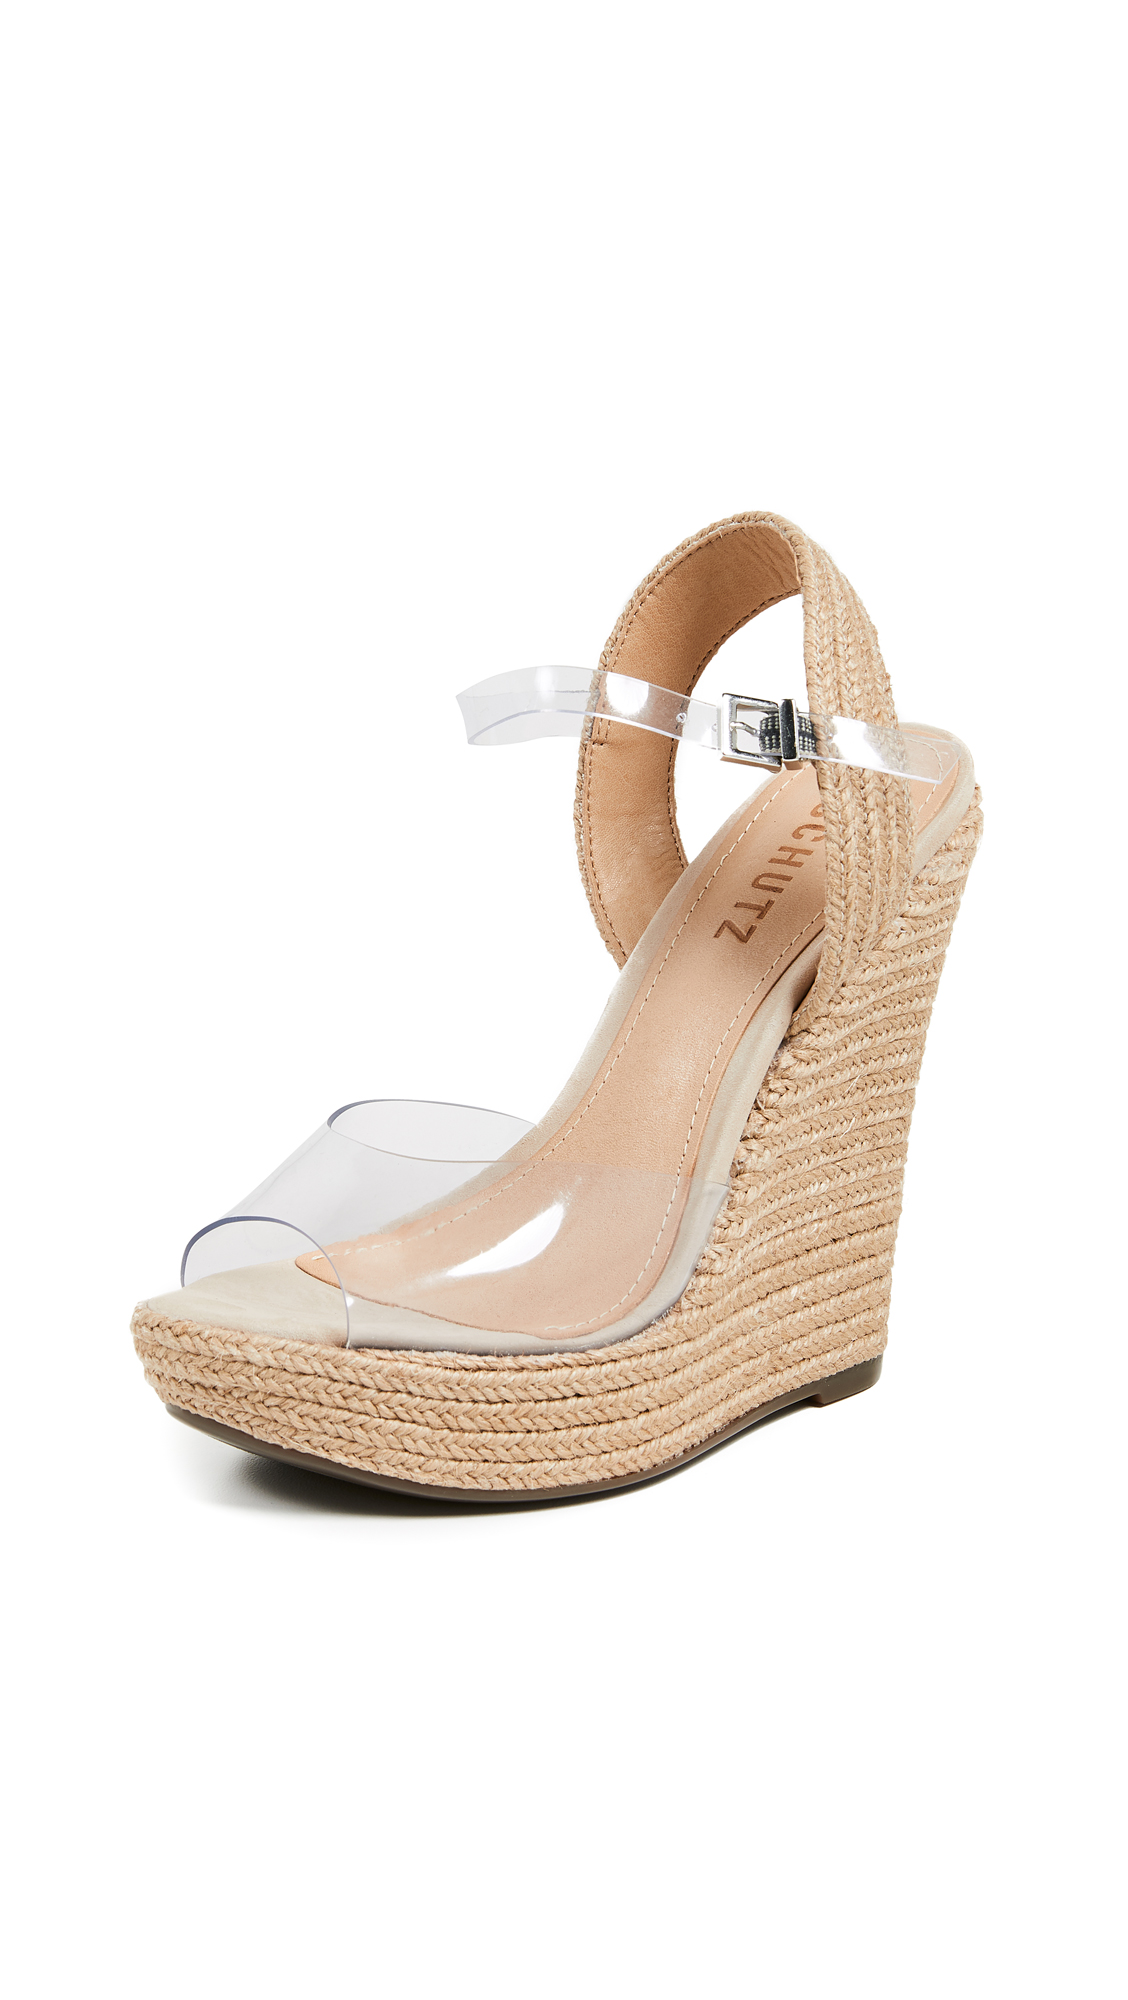 Schutz Lutieres Wedge Espadrilles - Transparent/Natural